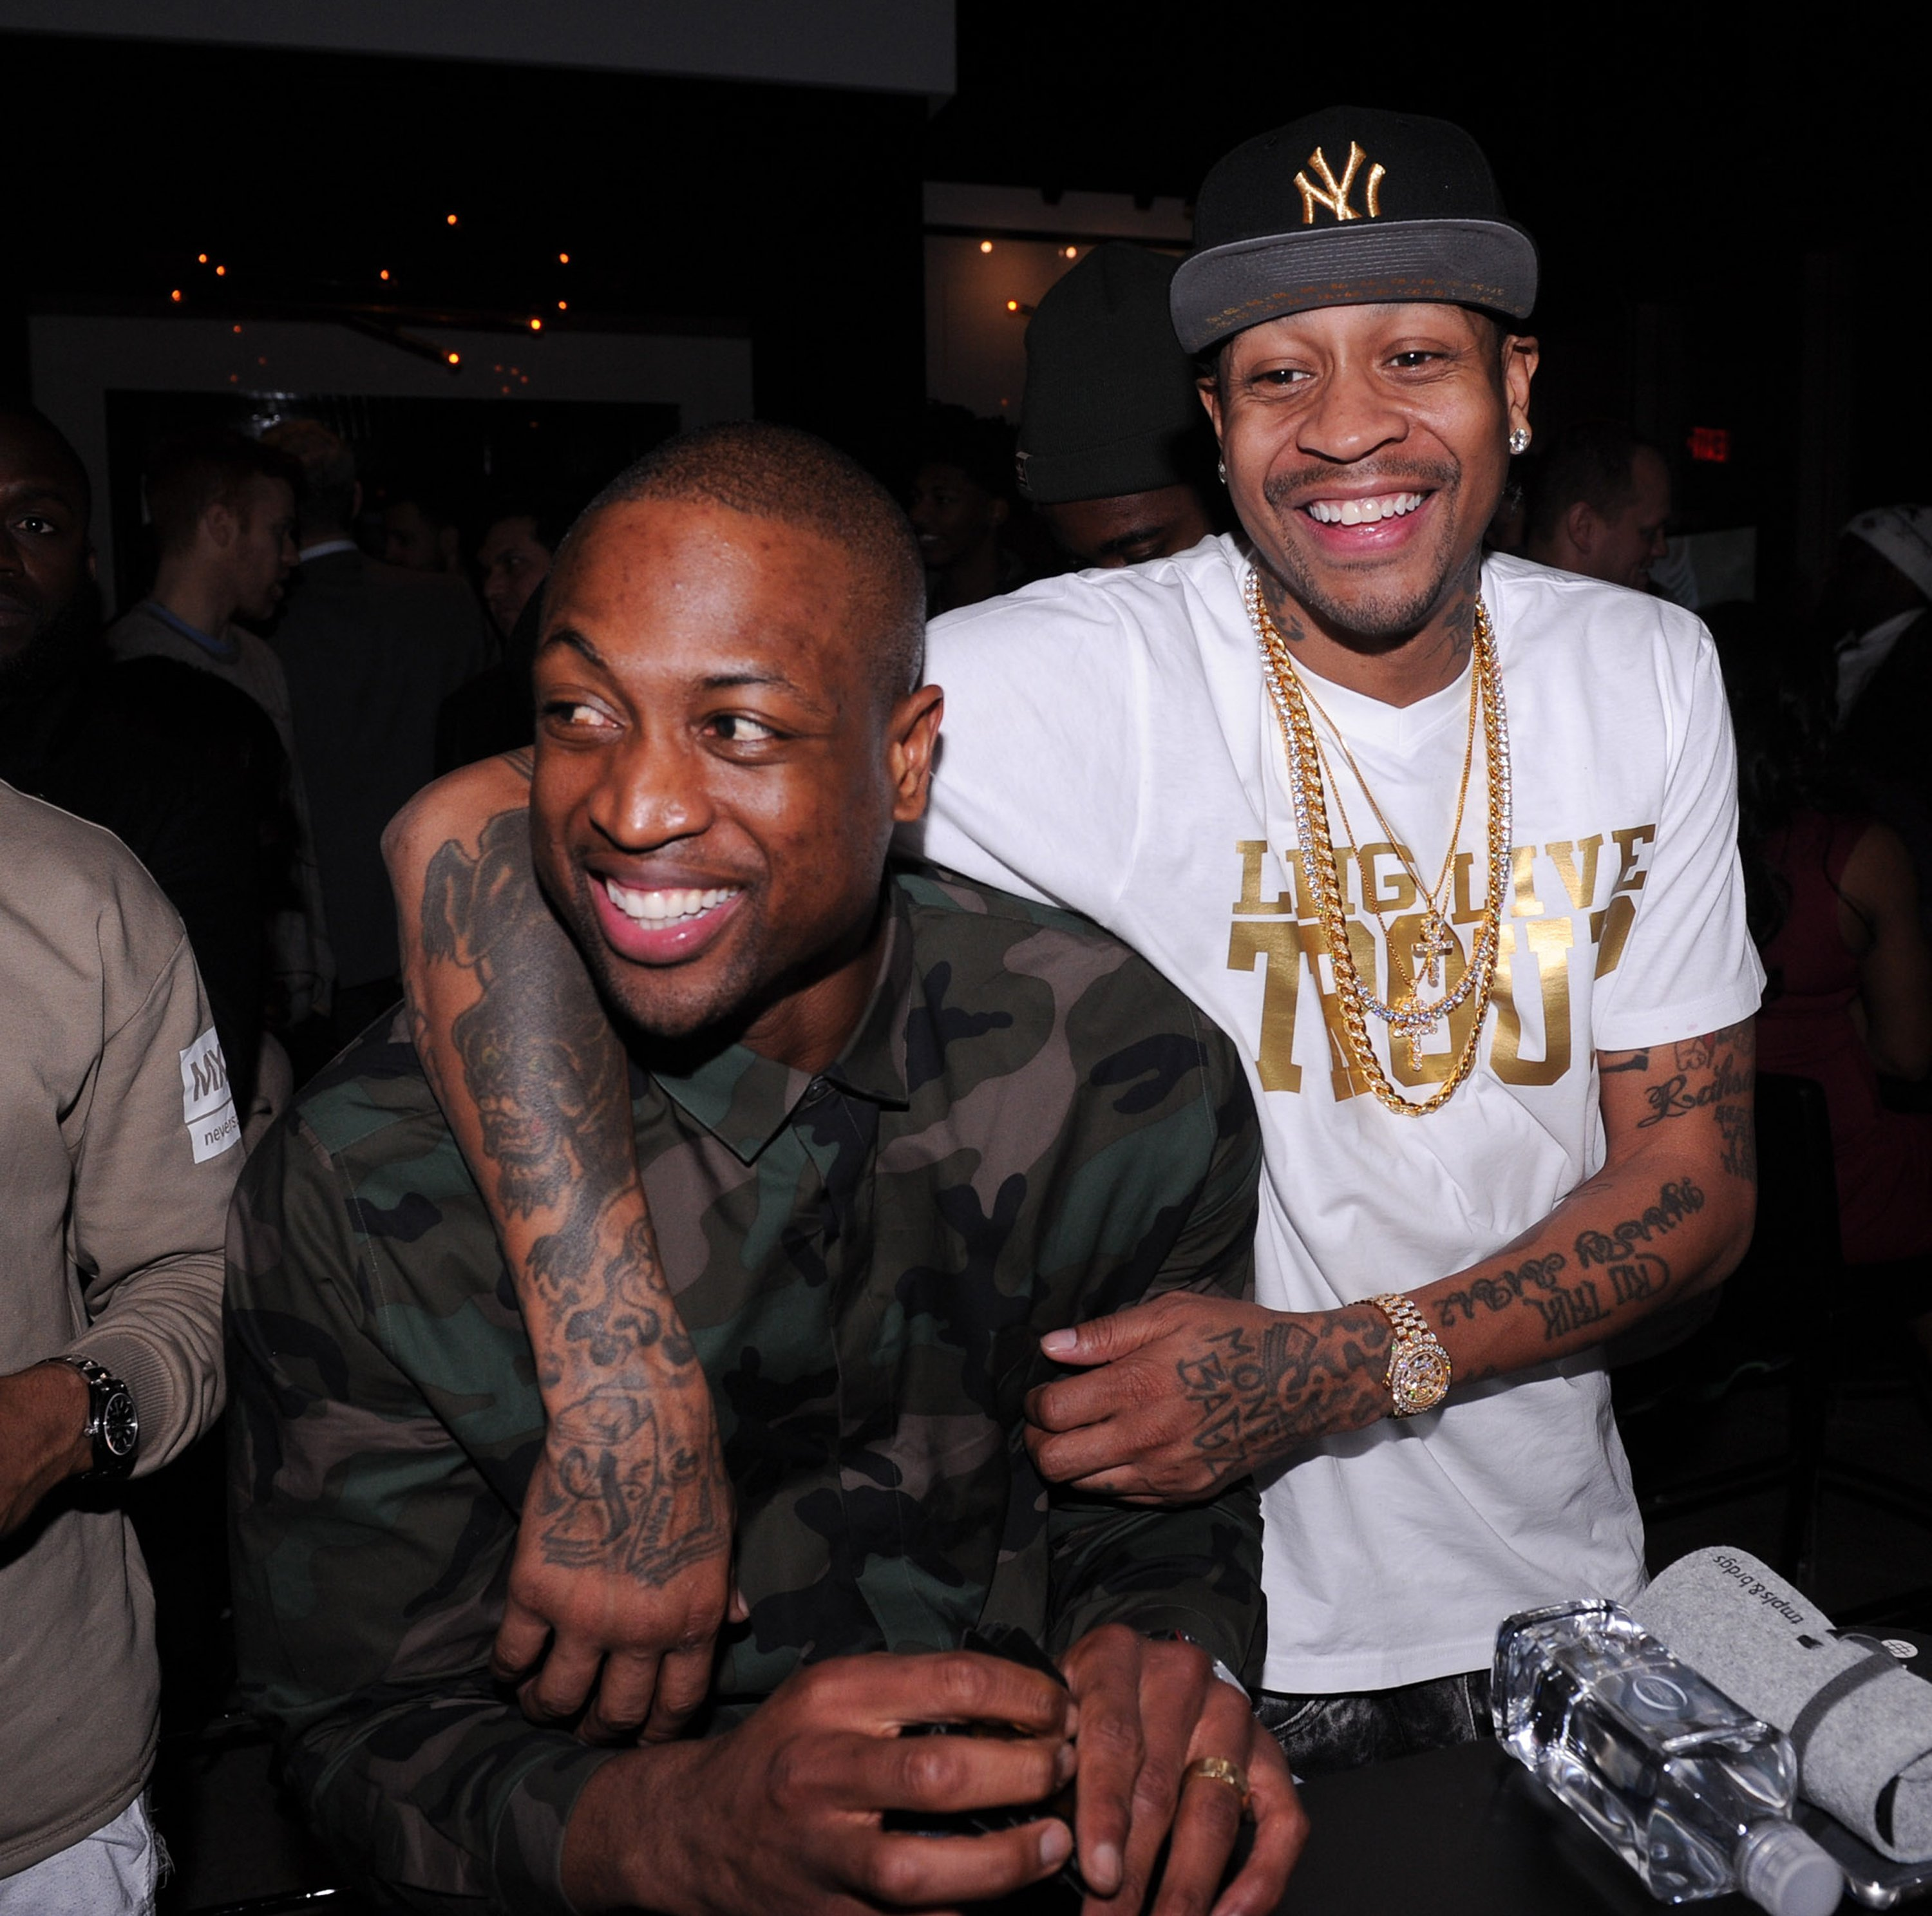 On-court rivals Dwyane Wade and Allen Iverson sharing a laugh during the former's Spade Tournament at The One Eighty in February 2016. | Photo: Getty Images